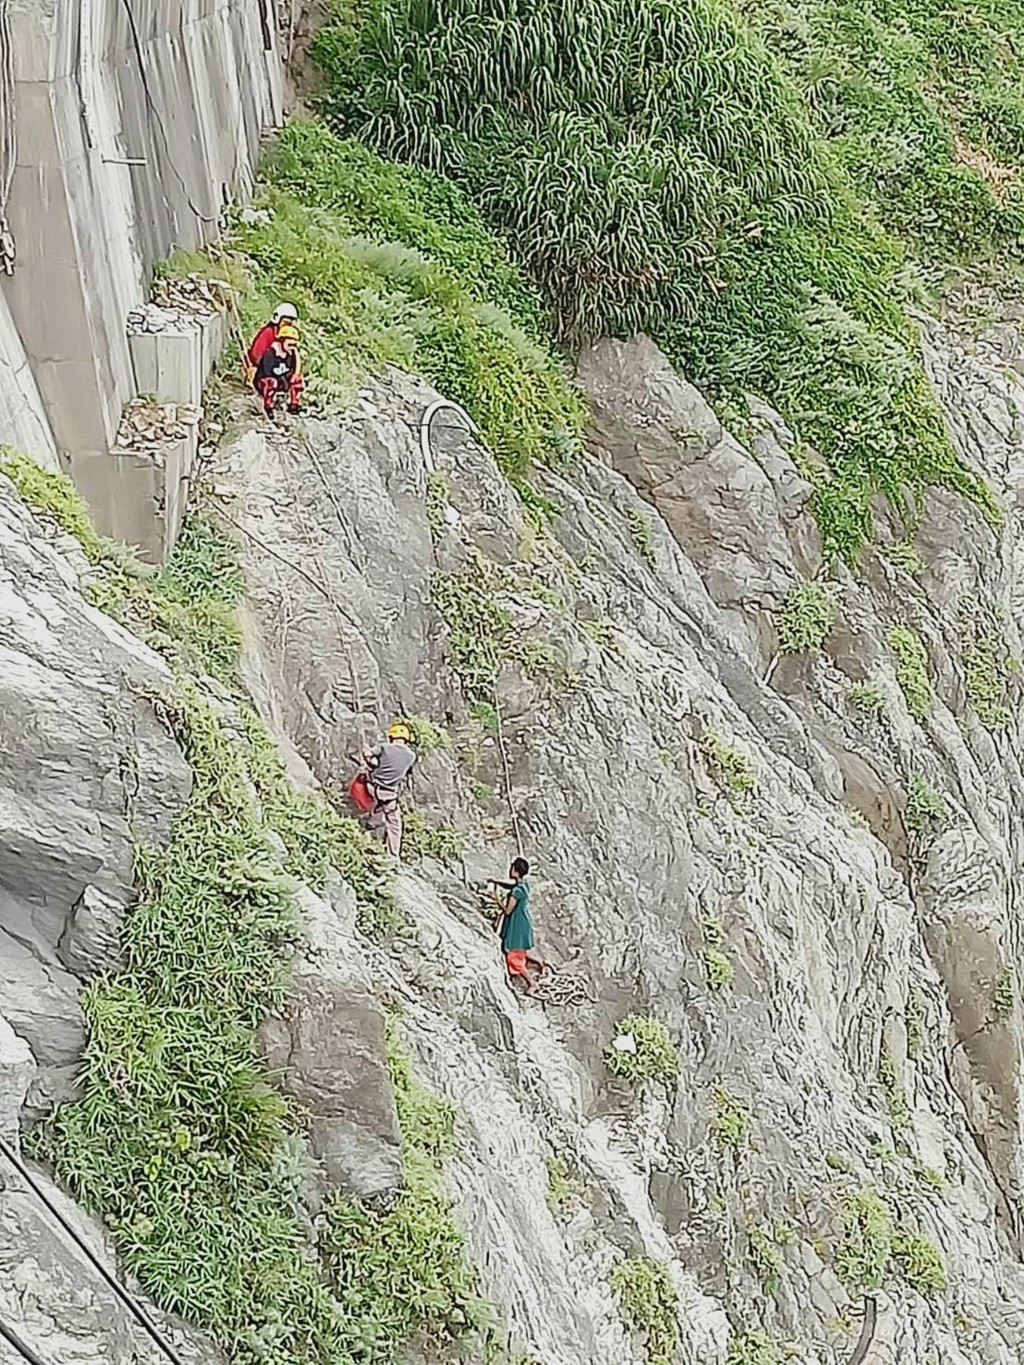 Rescue workers saved a foreign student off Qingshui Cliff in Hualien after a 17-hour standoff (photo by the Coast Guard)